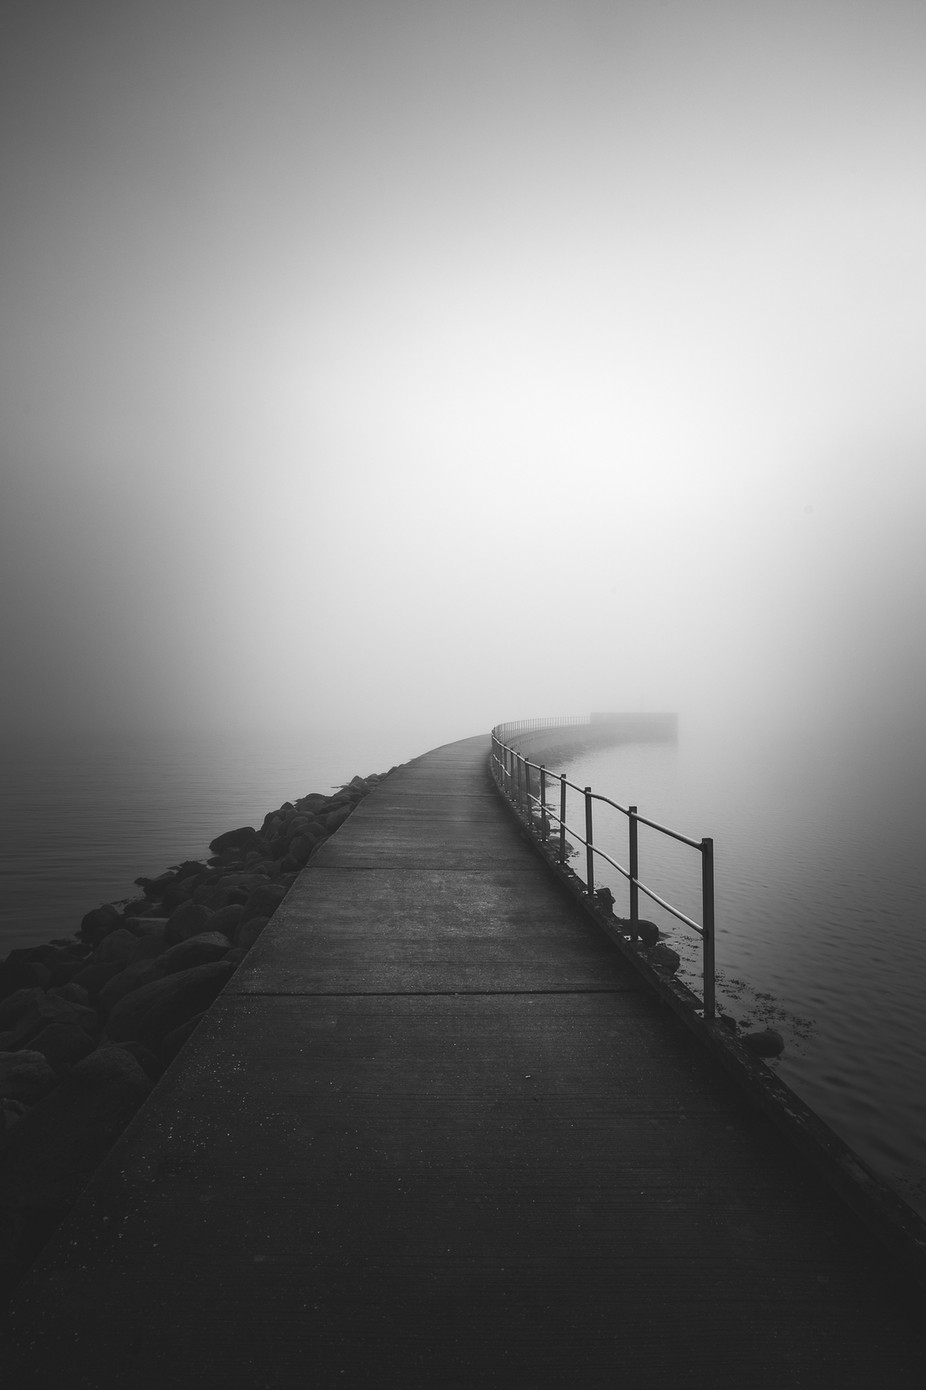 The end by Brian_Lichtenstein - Our World In Black And White Photo Contest